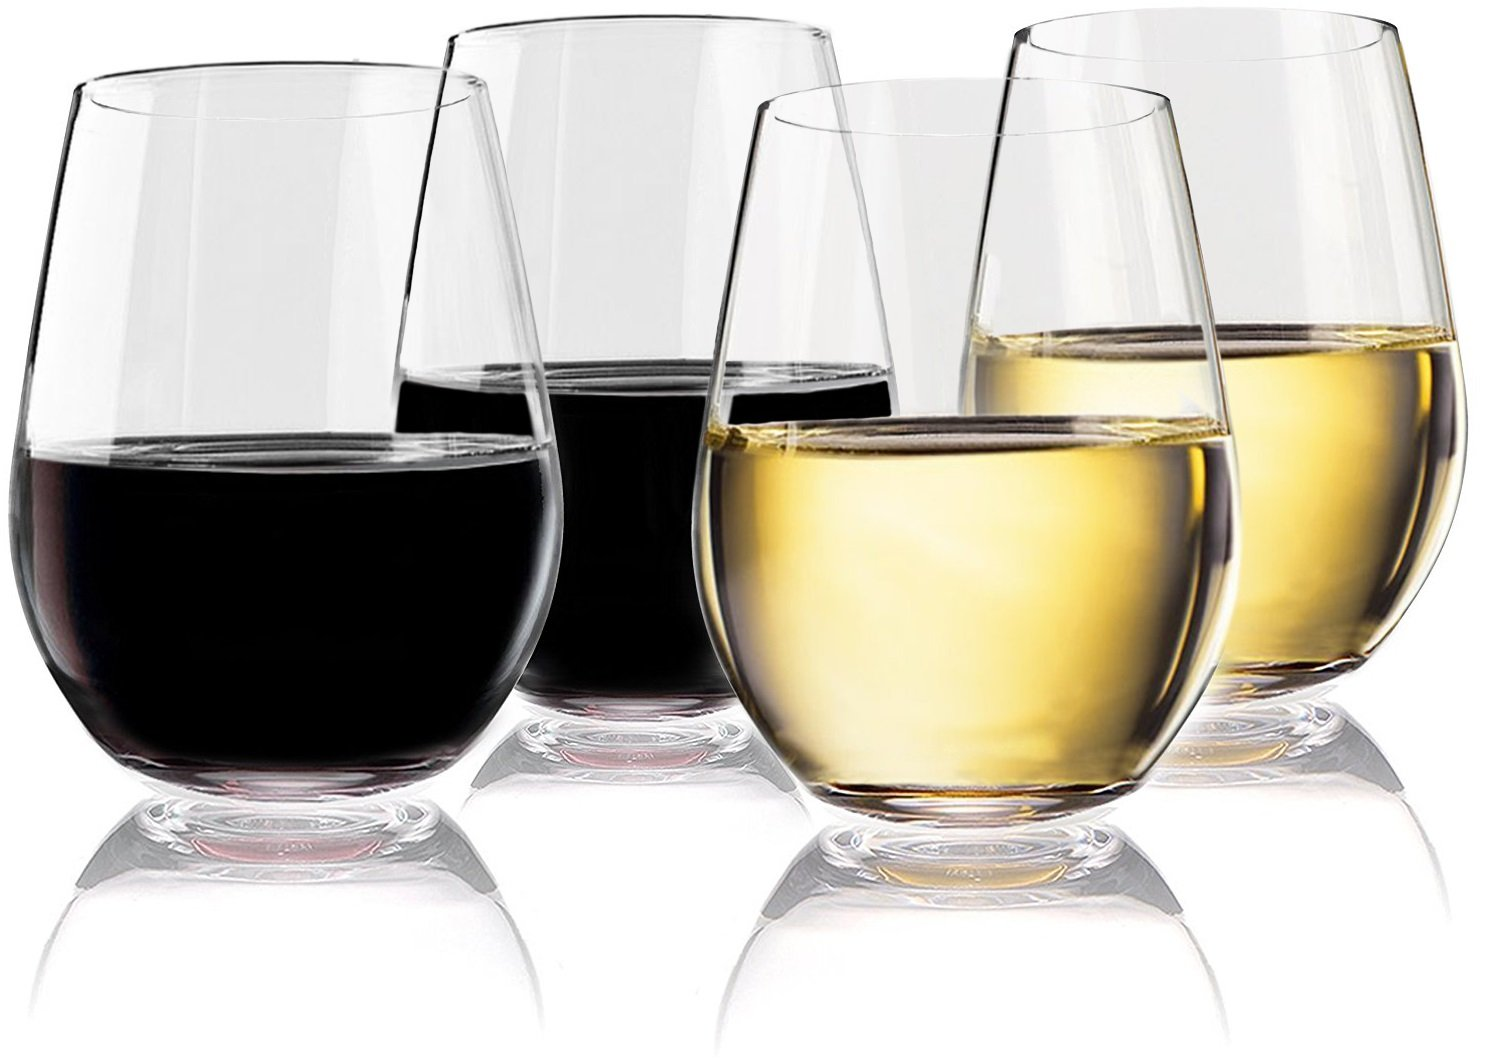 Vivocci Unbreakable Elegant Plastic Stemless Wine Glasses 20 oz | 100% Tritan Heavy Base | Shatterproof Glassware | Ideal For Cocktails & Scotch | Perfect For Homes & Bars | Dishwasher Safe | Set of 4